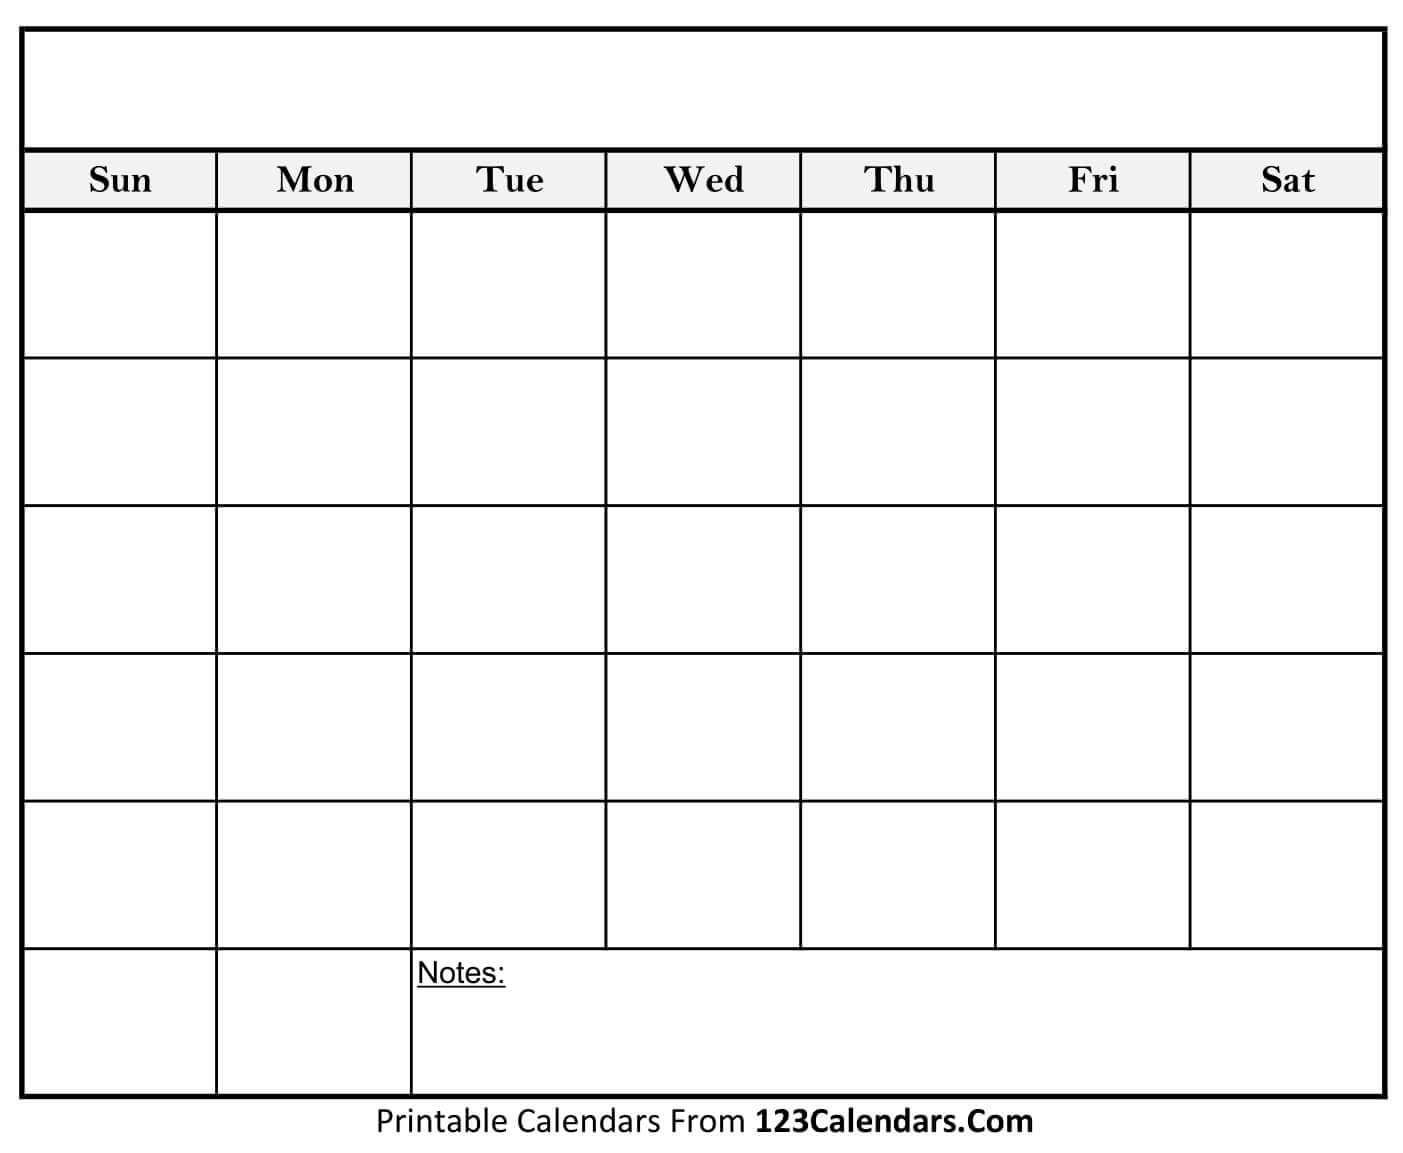 Free Printable Blank Calendar | 123Calendars For Full Page Blank Calendar Template